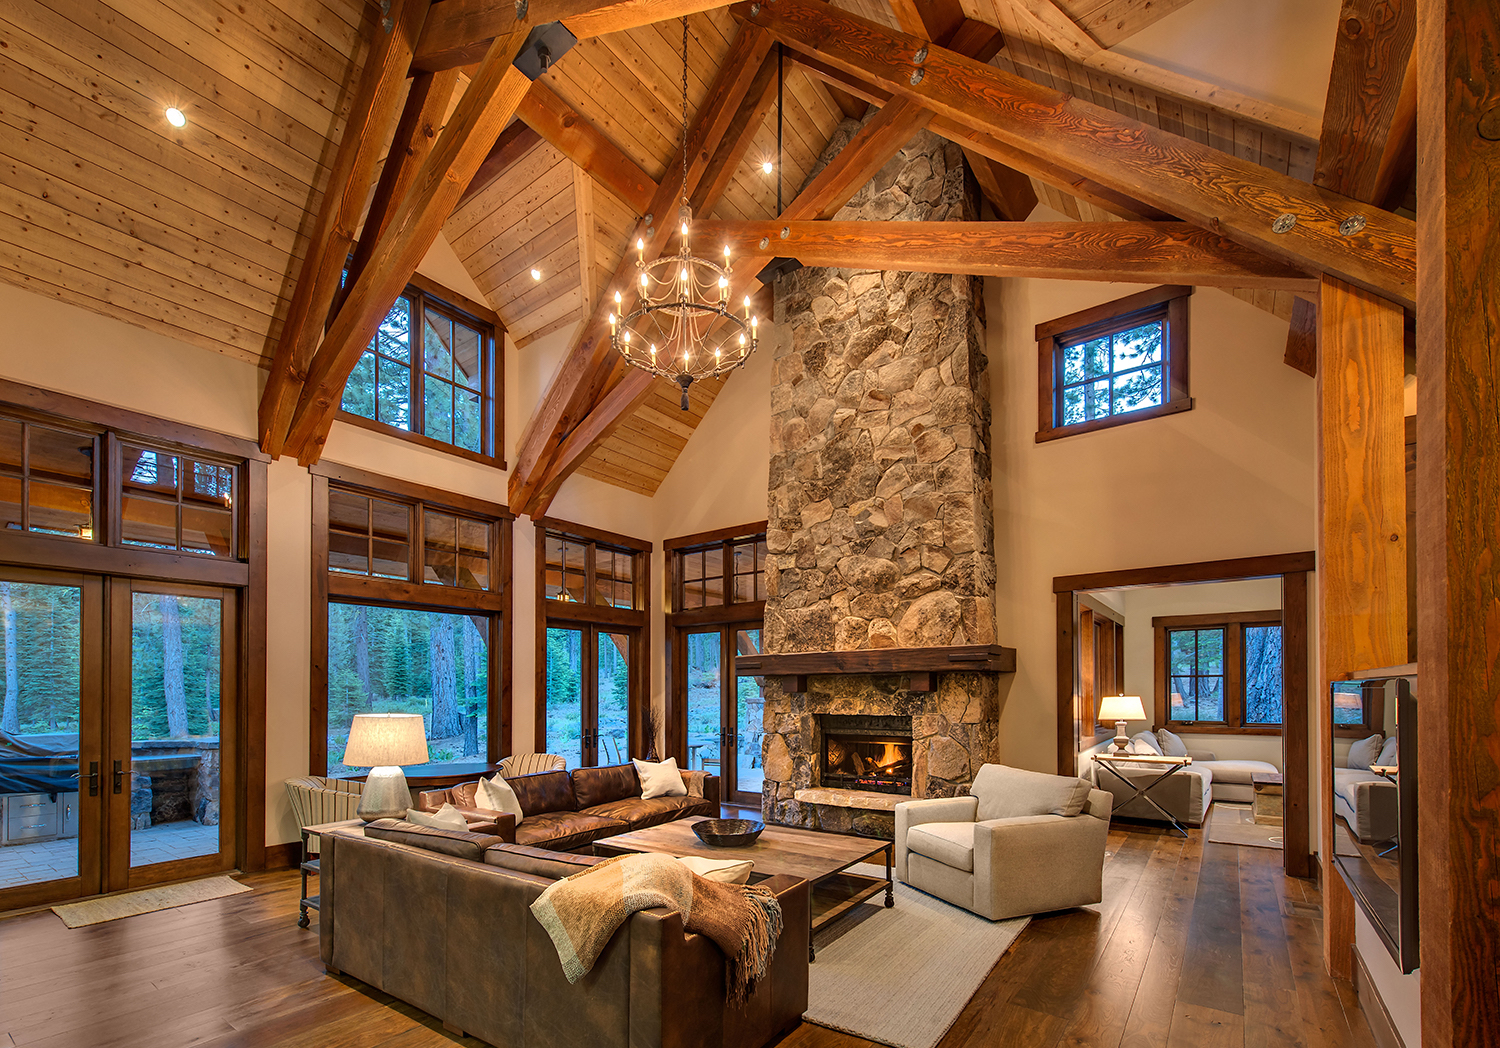 Lot 212_Living Room_Vaulted Ceiling_Wood Beams.jpg